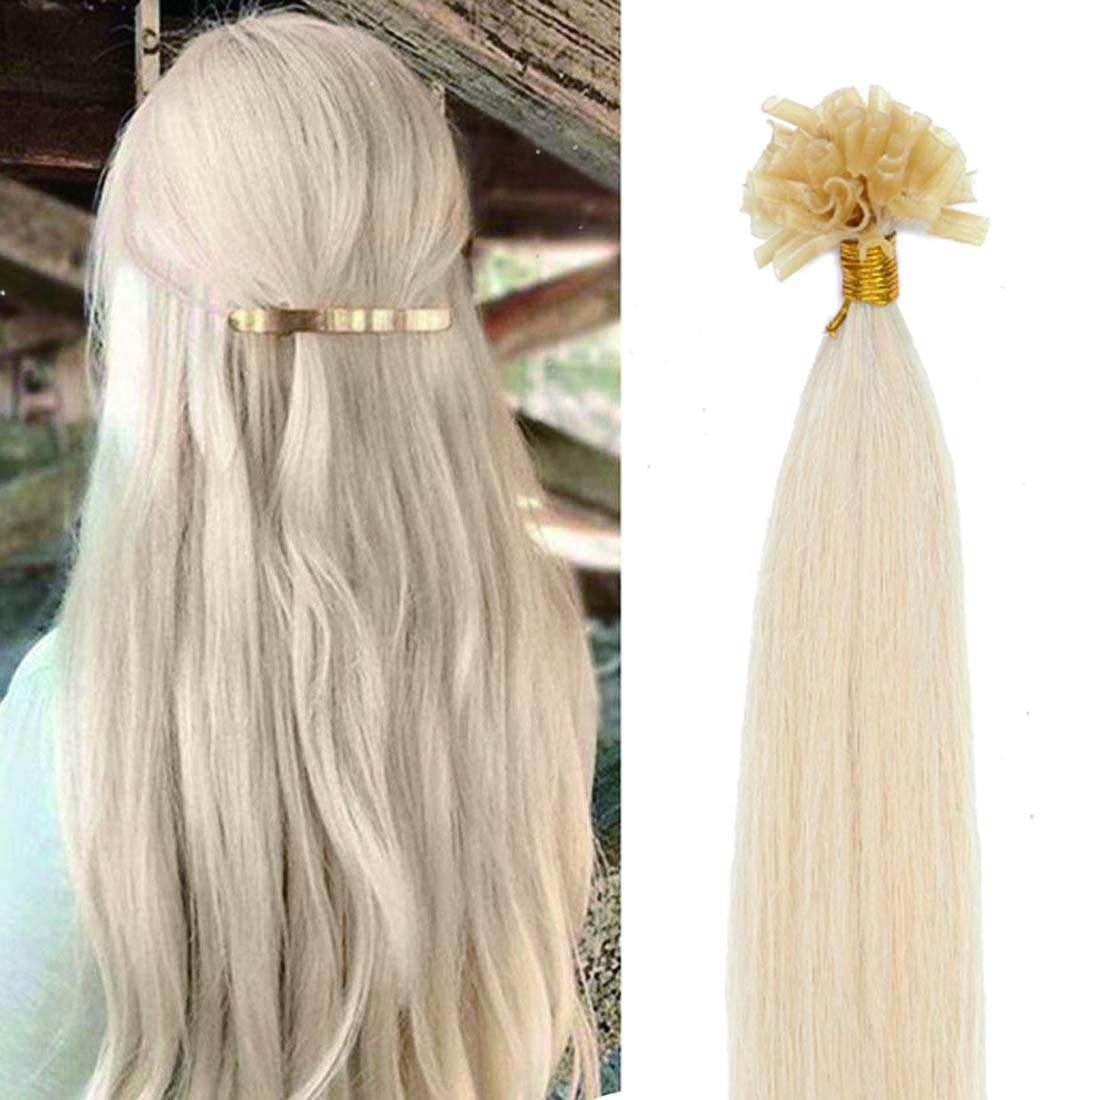 SEGO Pre Bonded U Tip Hair Extensions Human Hair 100 Strands Keratin Fushion Nail Tip Human Hair Extensions 100% Real Remy Hair Silky Straight #60 Platinum Blonde 20 inches 50g by SEGO